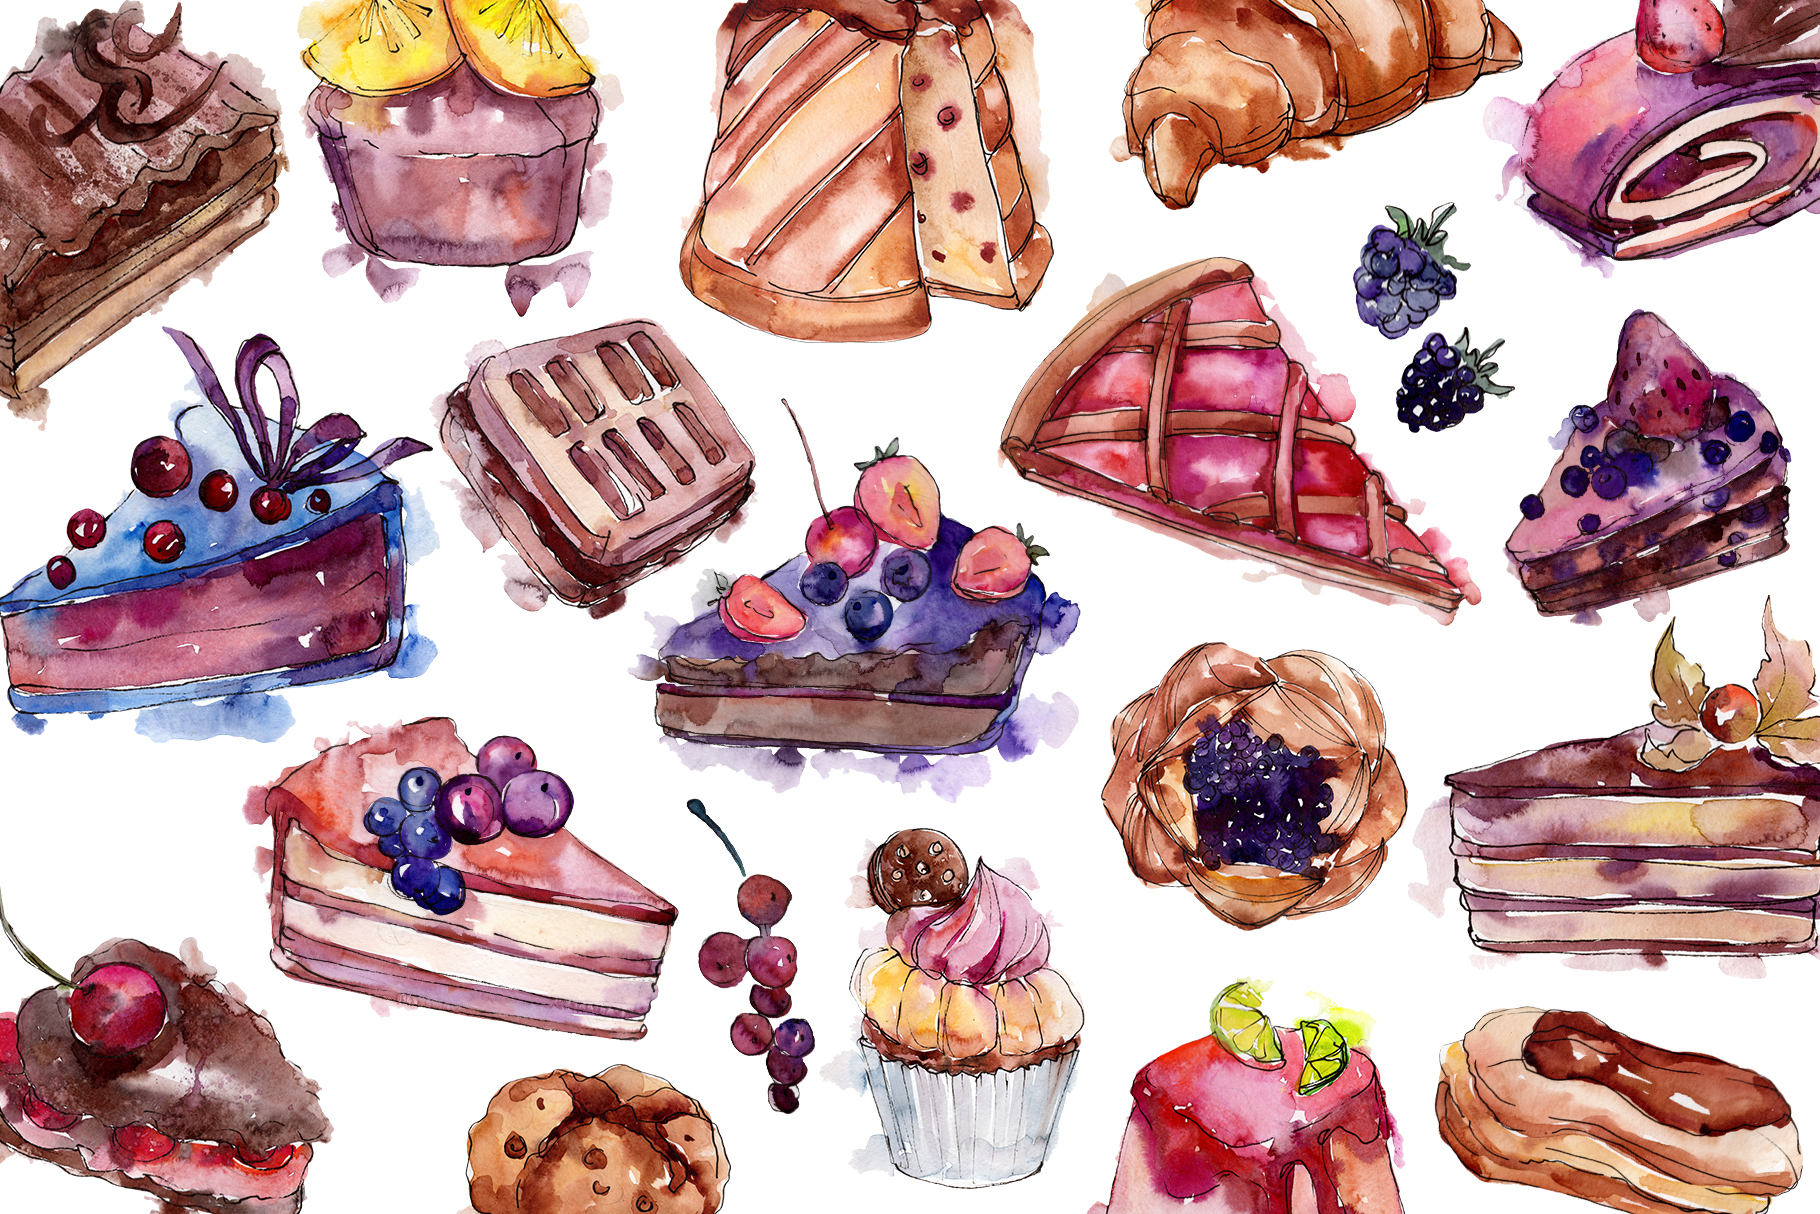 Cake sweet happiness watercolor png example image 2